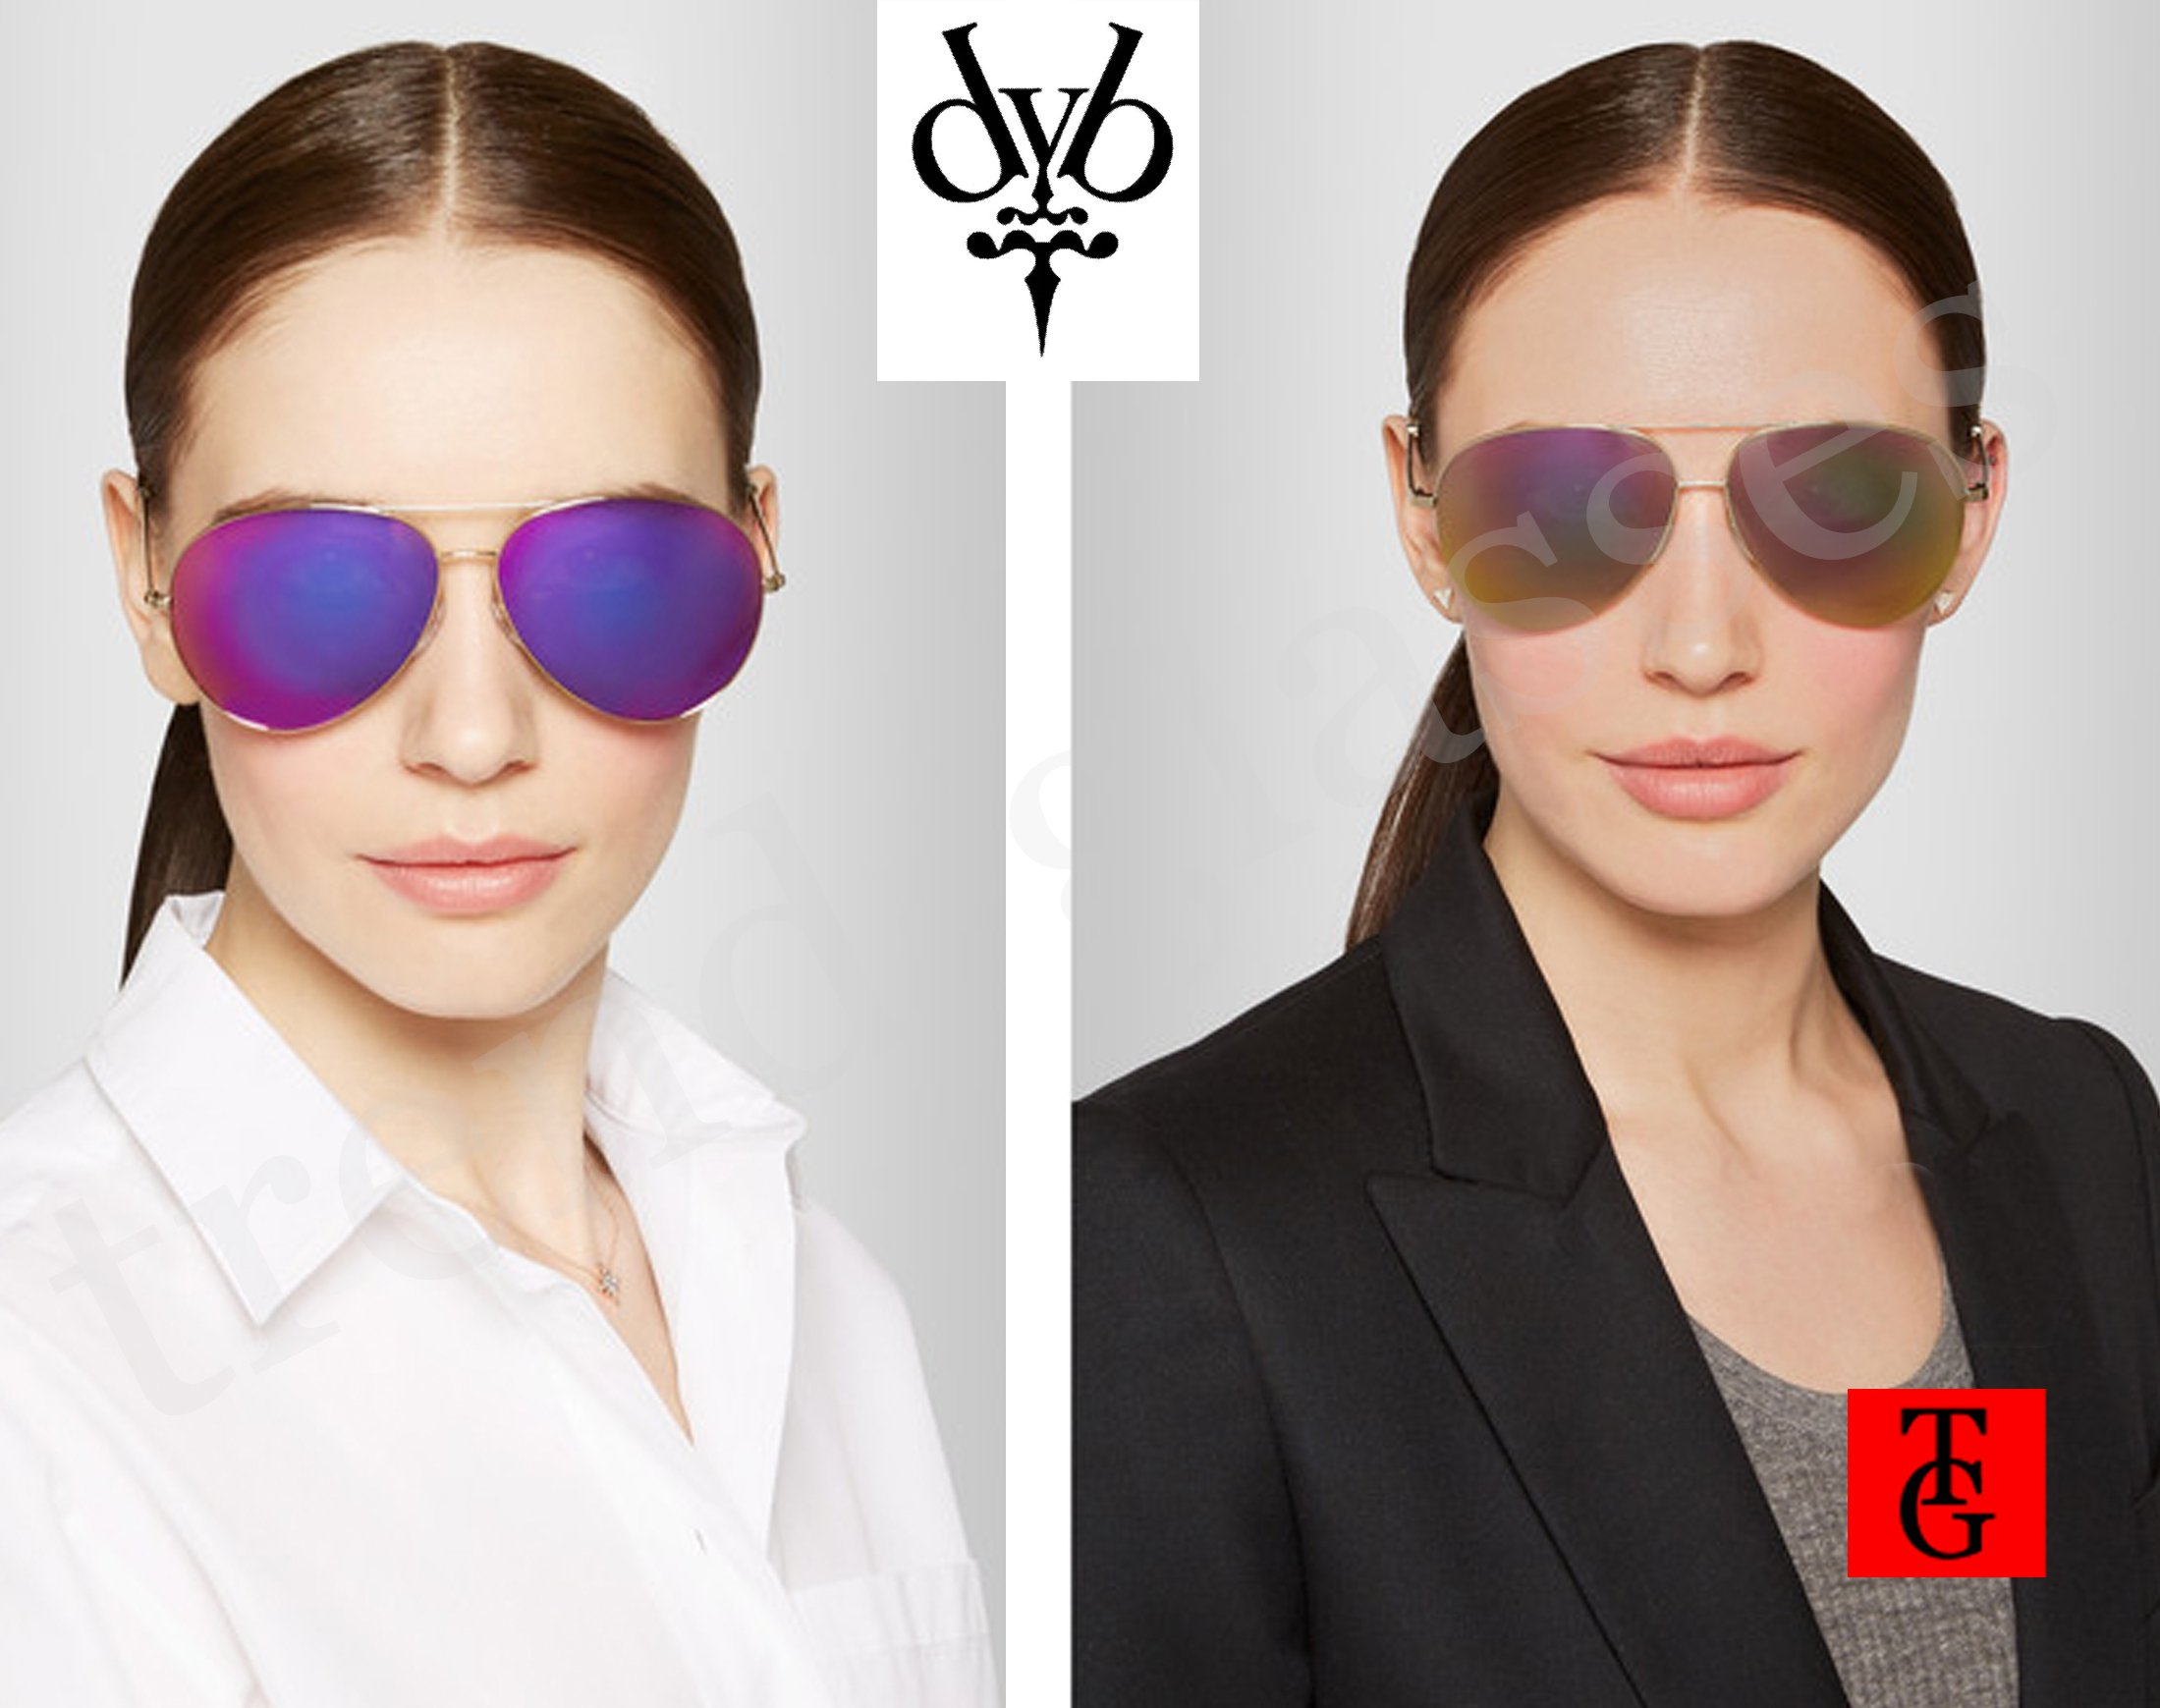 http://trend-glasses.ru/images/upload/ПРц34ууИМЕР.jpg